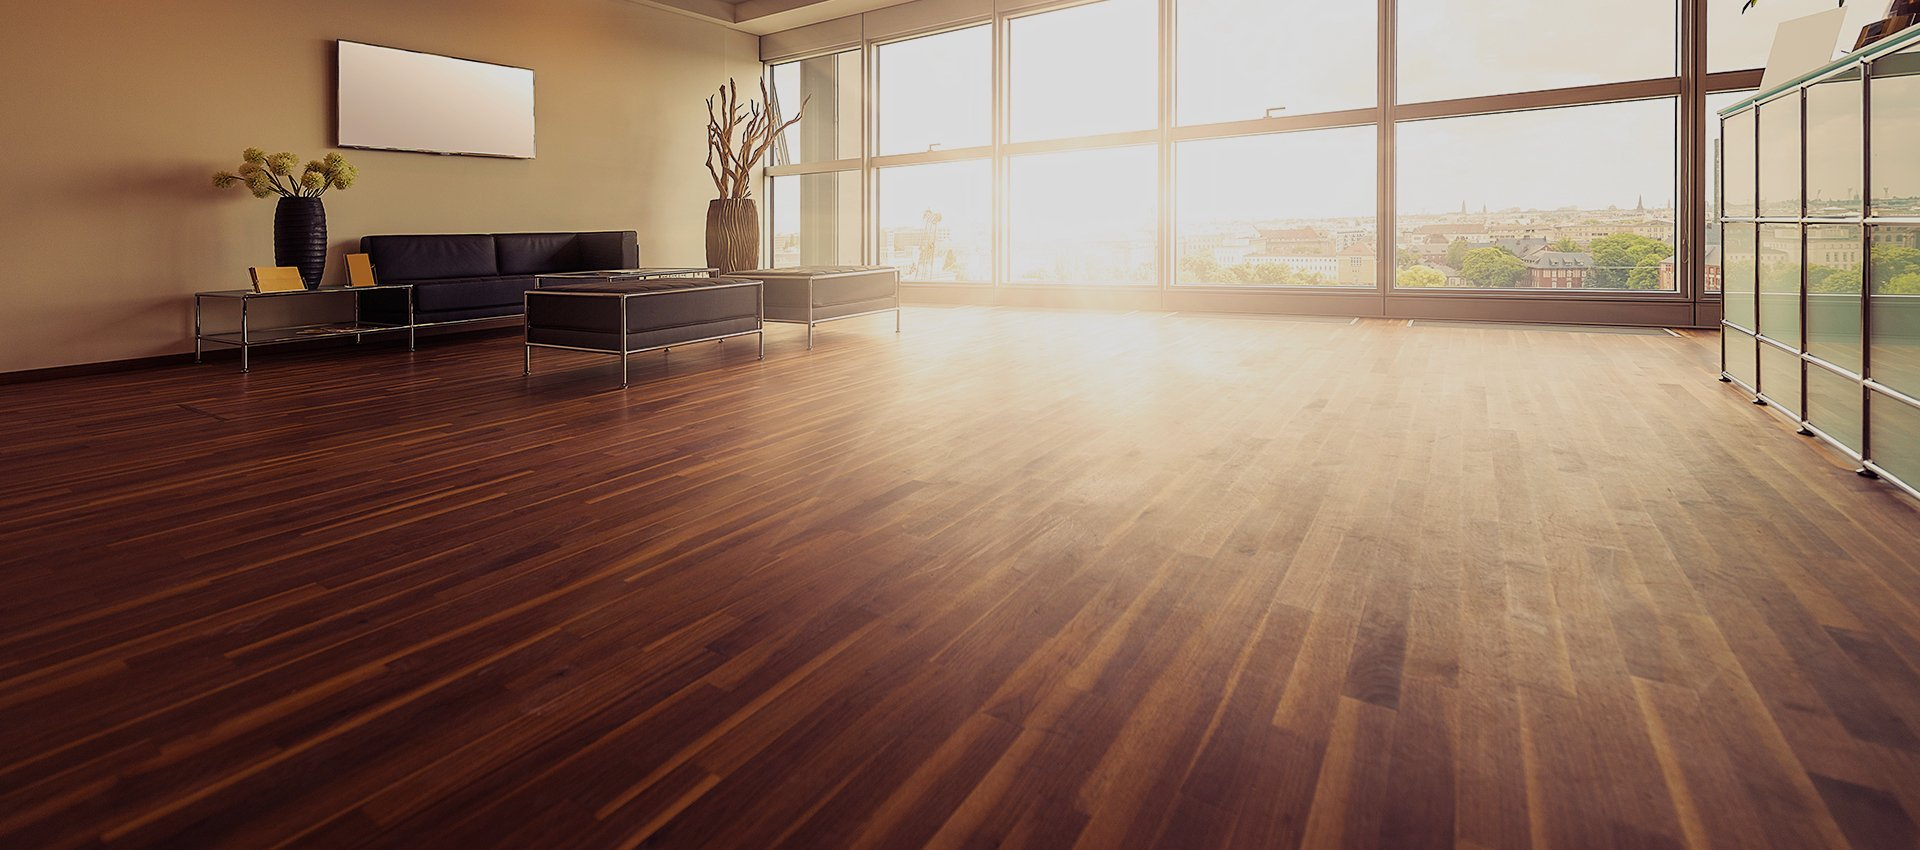 wooden flooring after installation